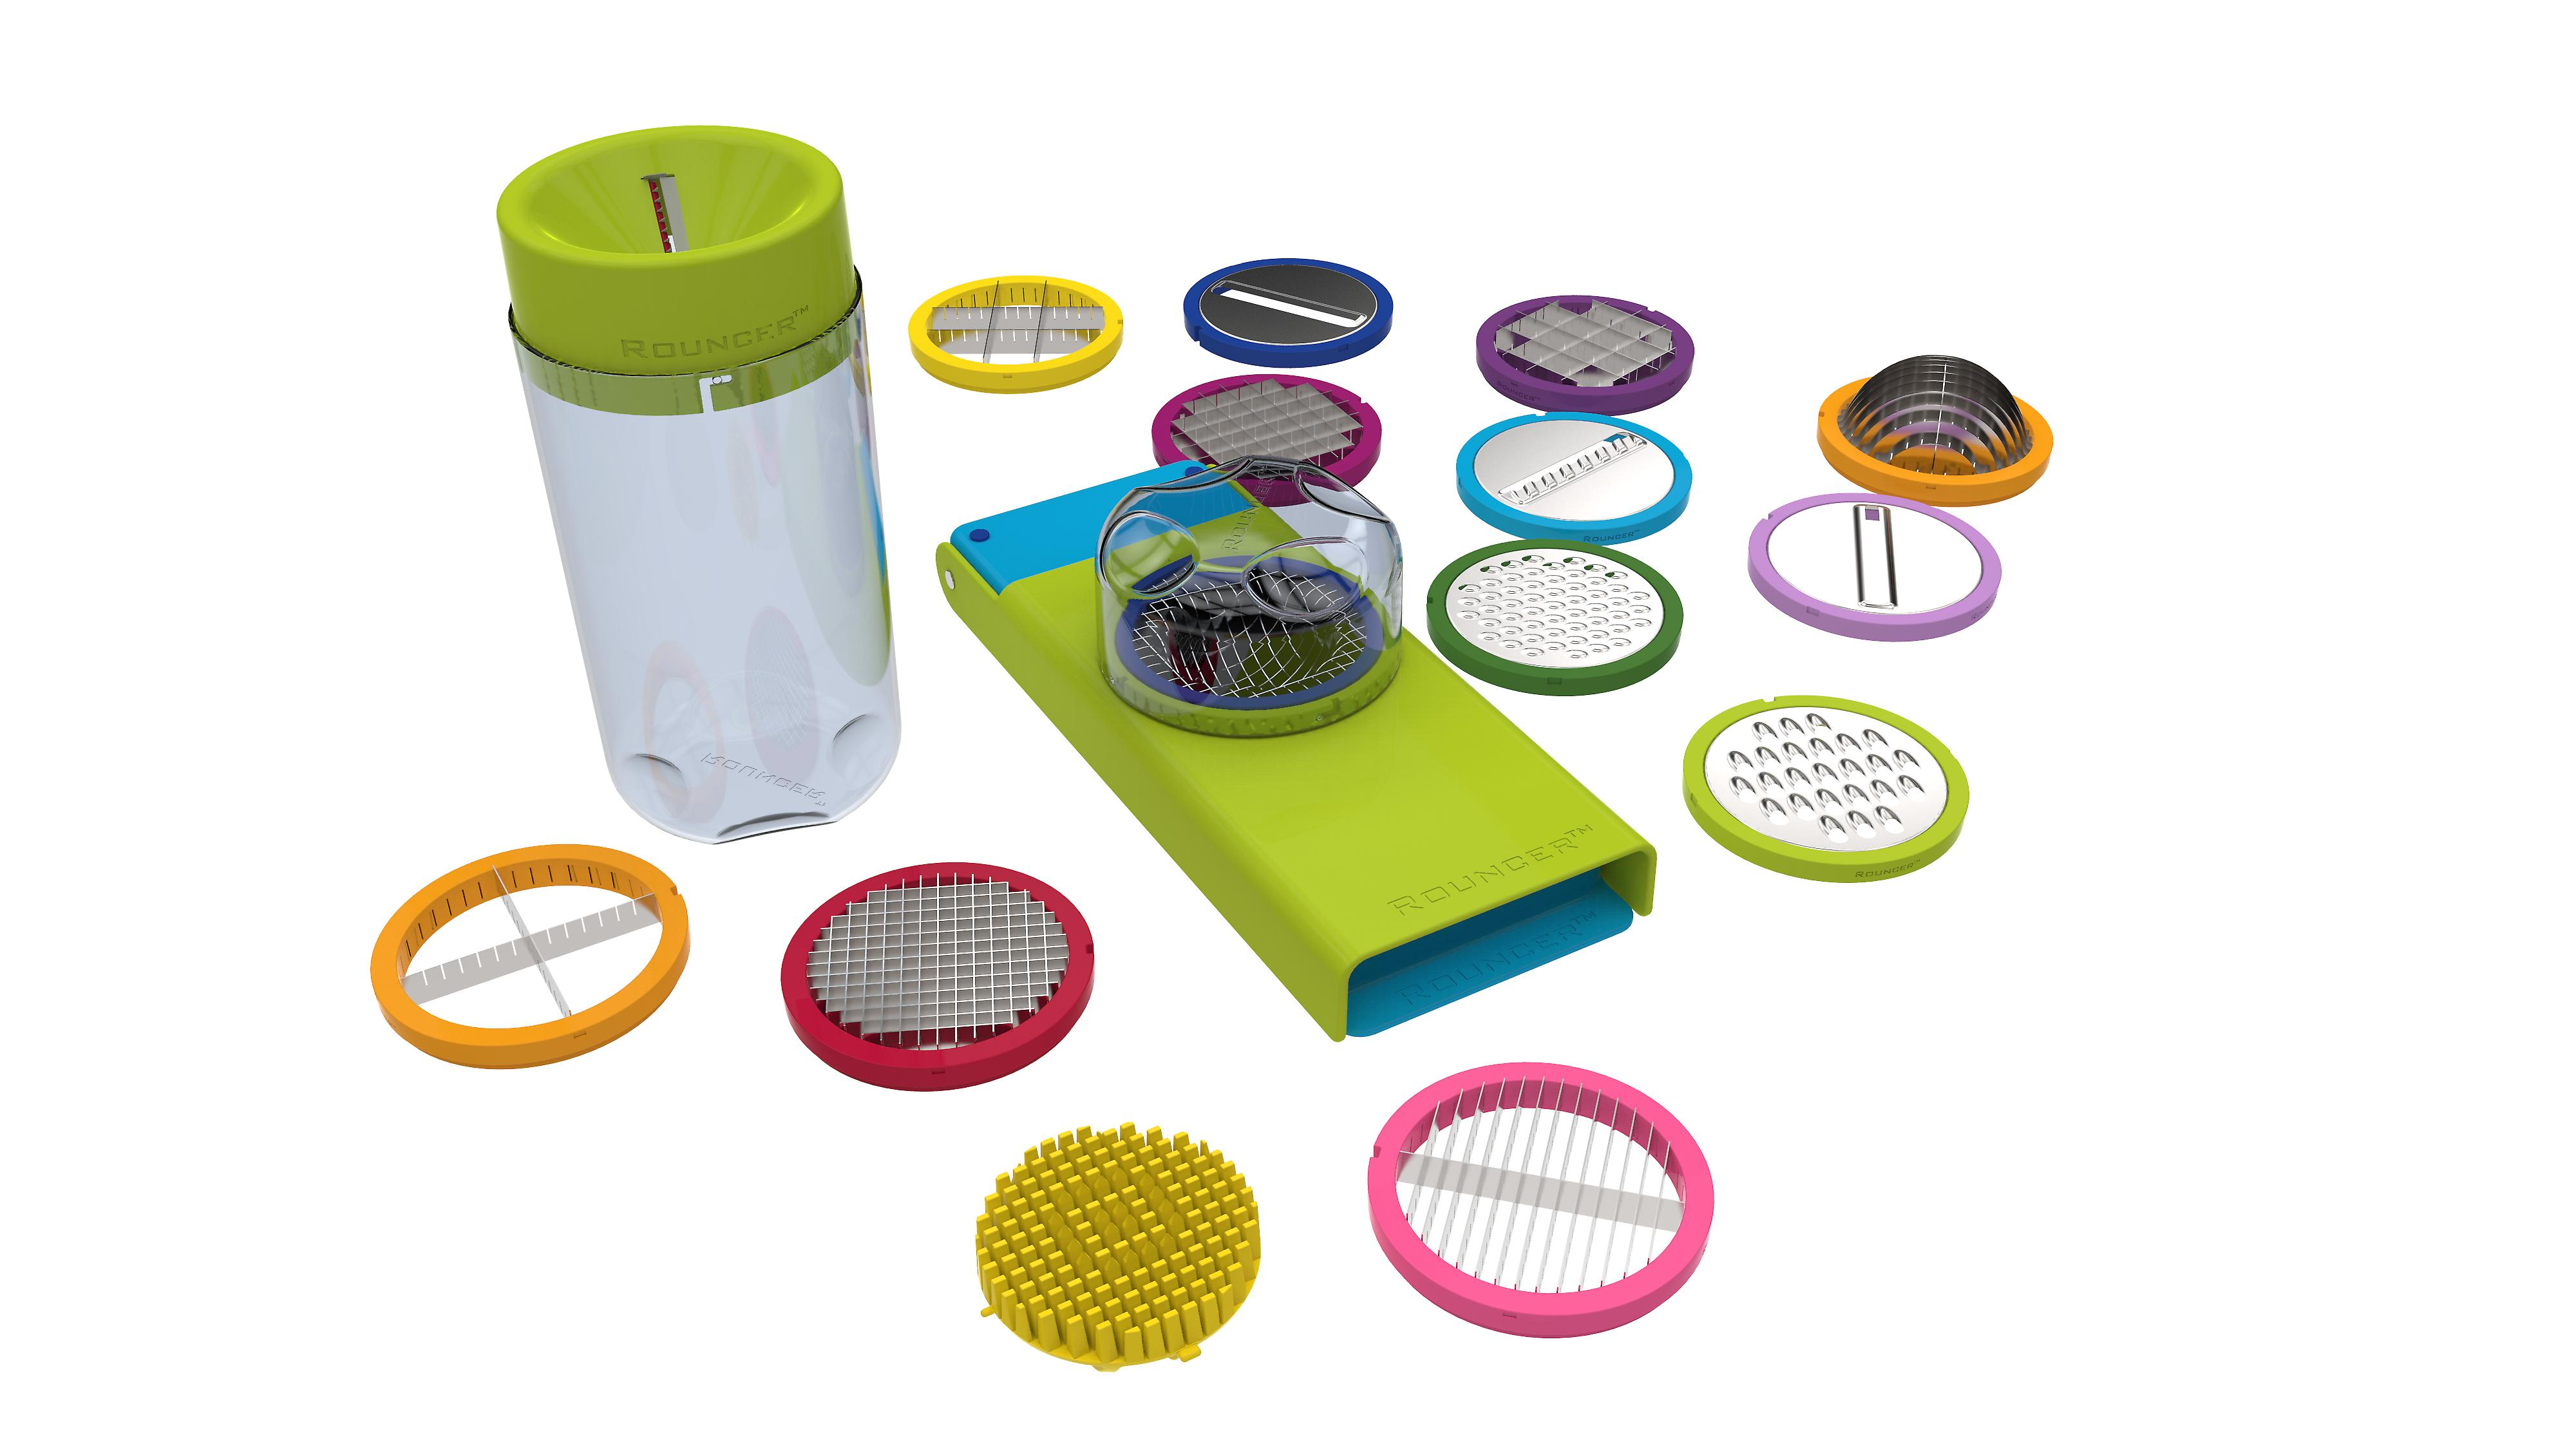 Rouncer Autumn Lemon - No Peeling 5 Seconds Onion Dicer Chopper 17 Blades Apple Corer Peeler Grater Mandoline Slicer Herb and Spiral Cutter